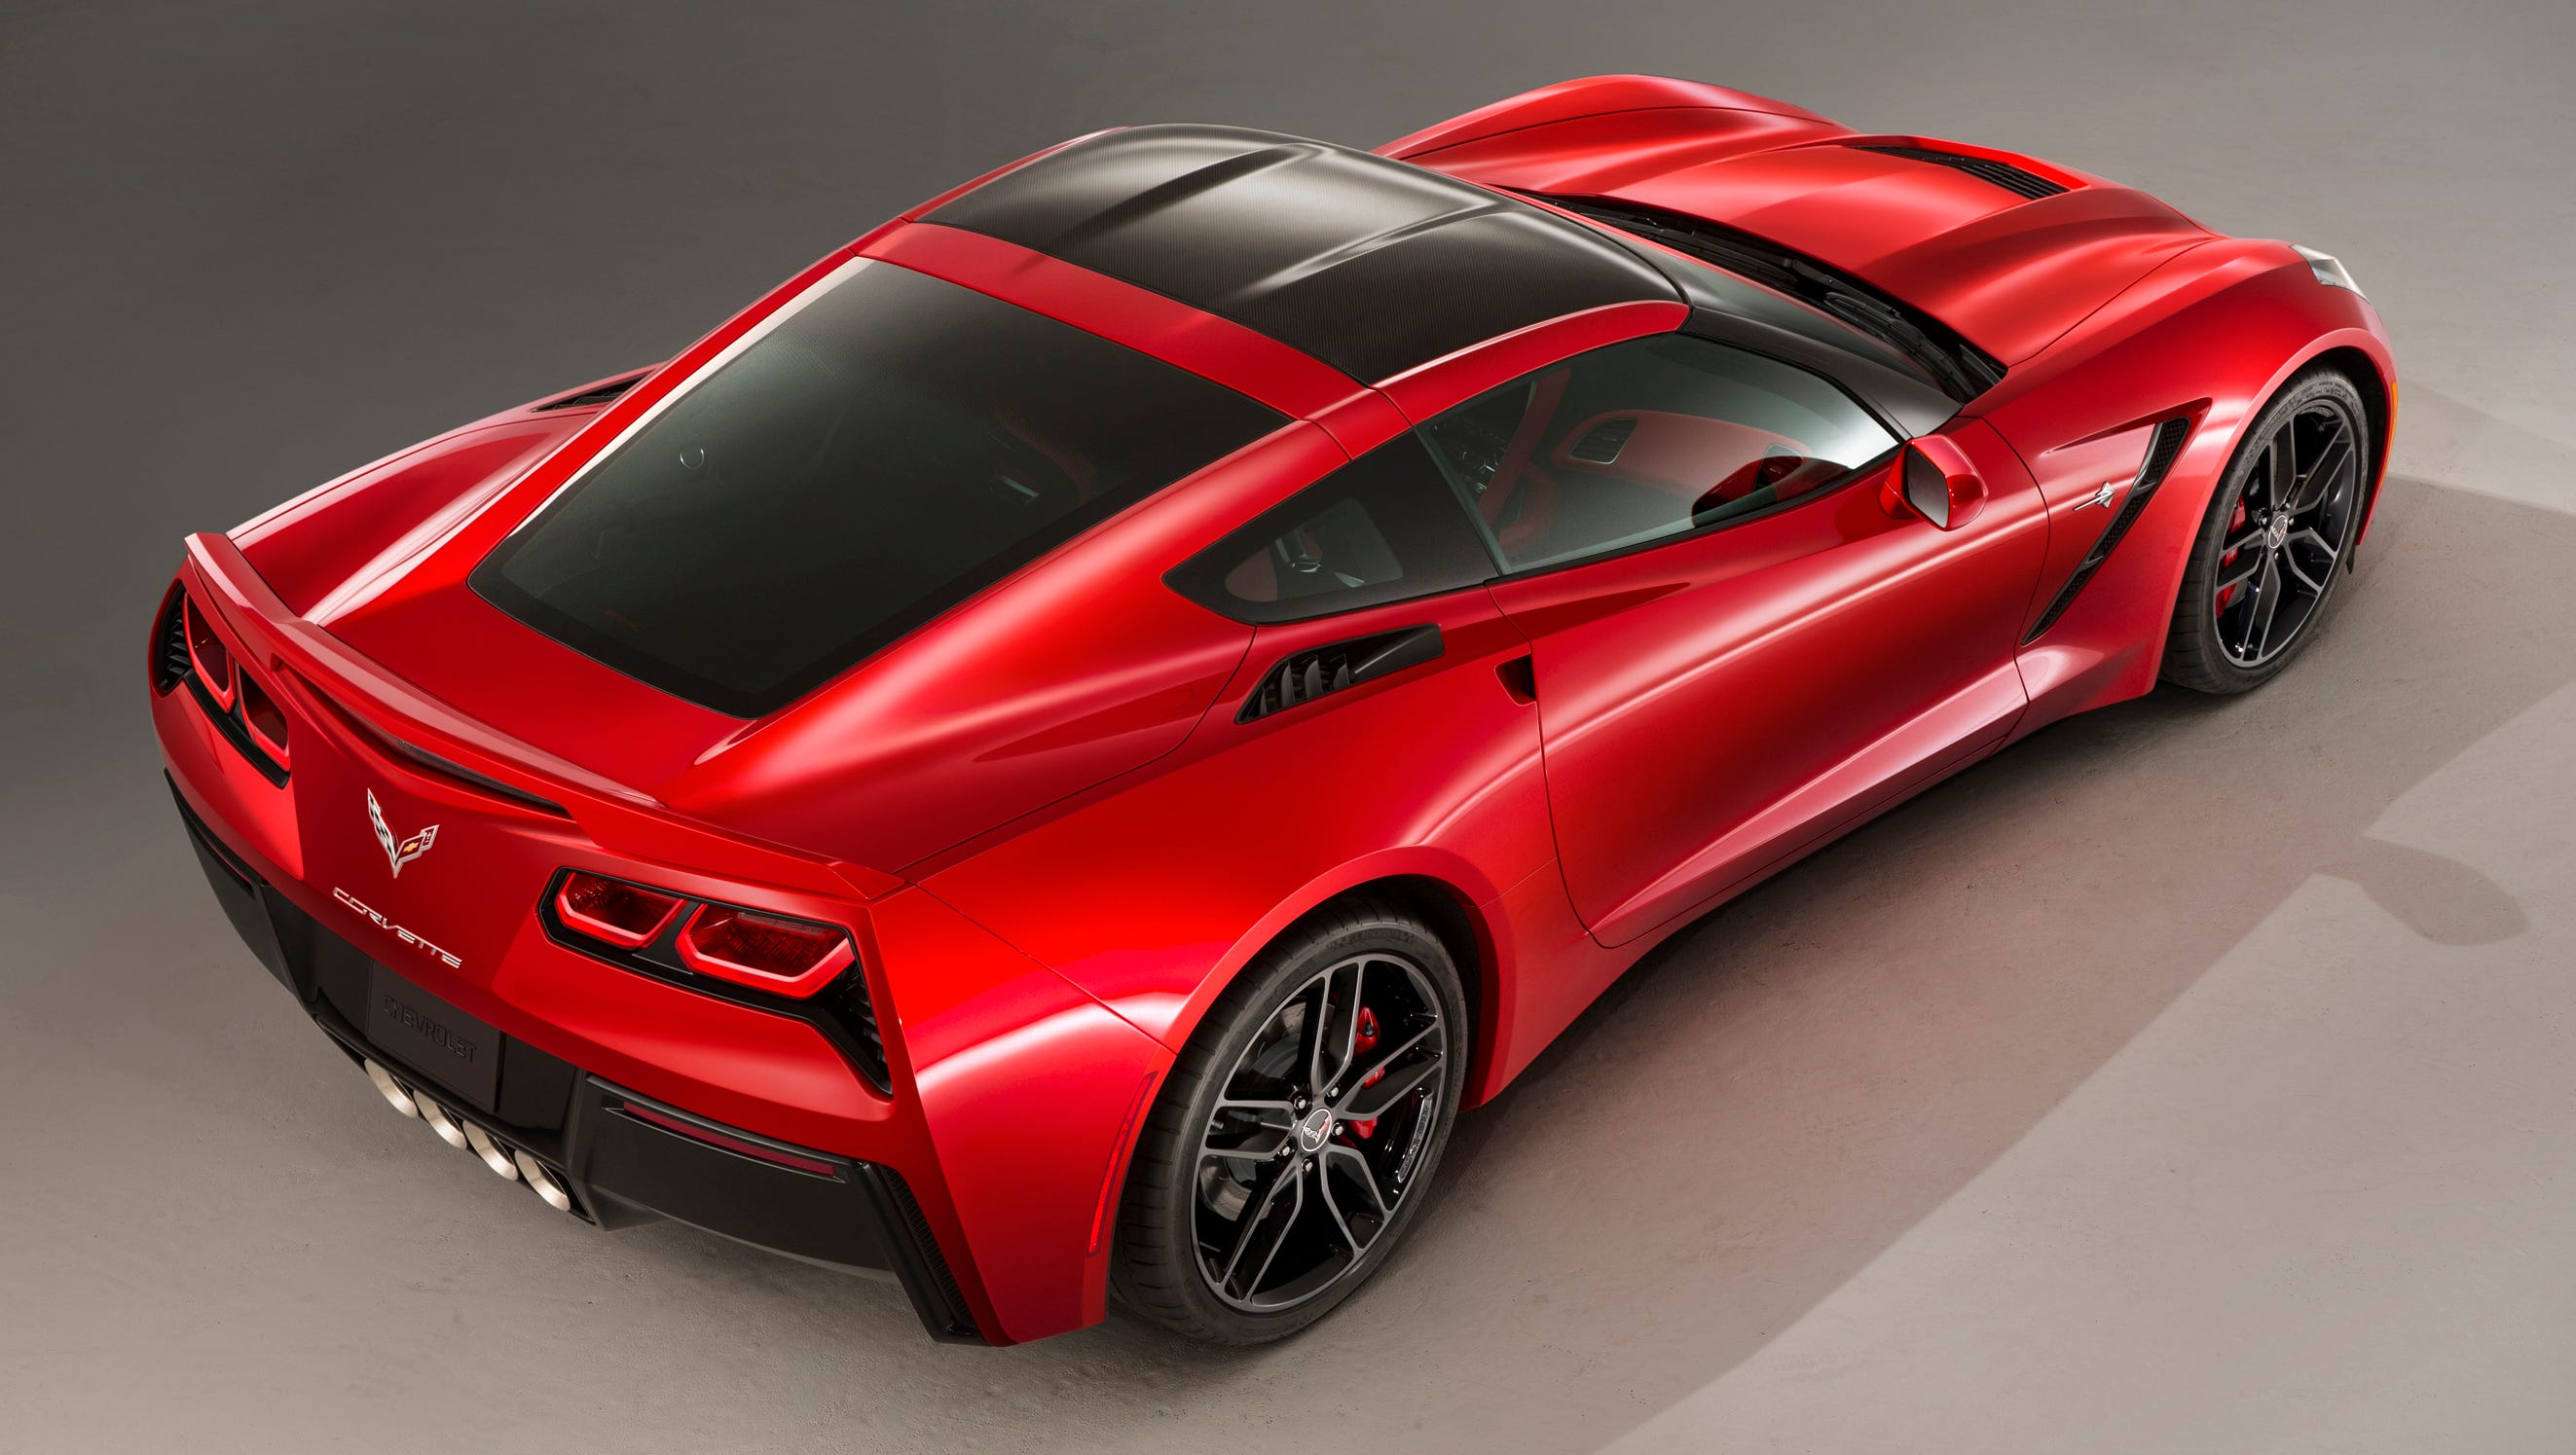 The fastback lines of the 2014 Corvette Stingray coupe model.